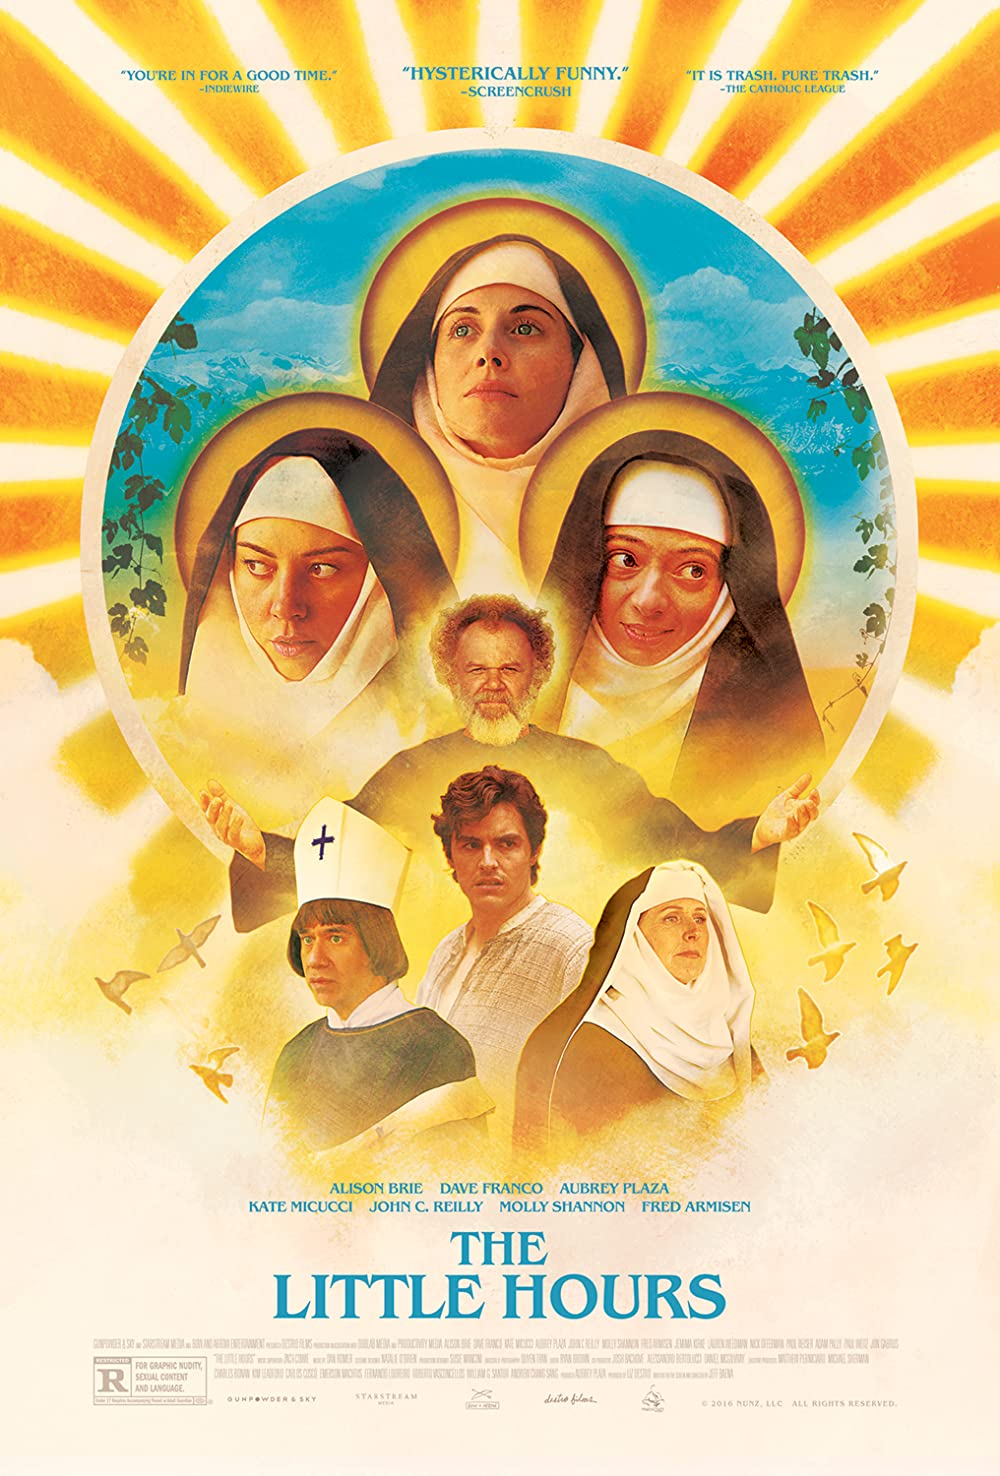 18+ The Little Hours 2017 Hindi ORG Dual Audio 1080p BluRay 1.4GB x264 AAC